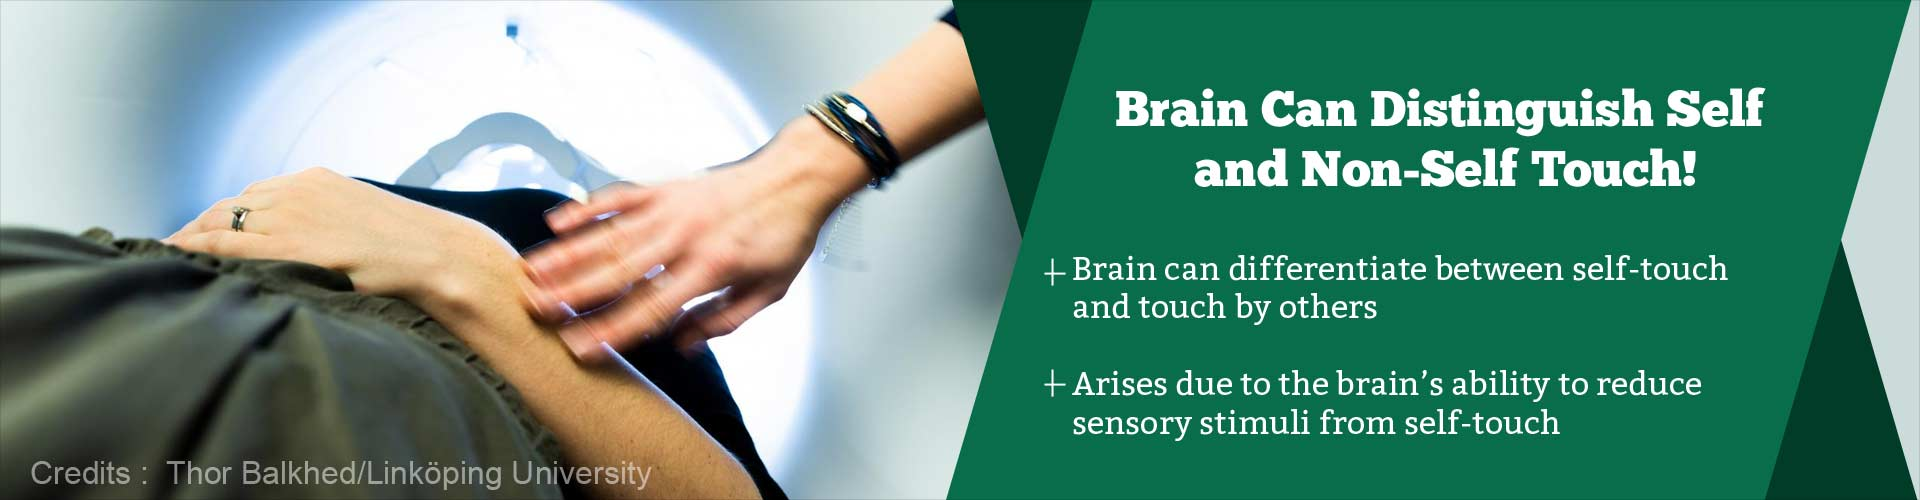 How Does the Brain Differentiate Between Self and Other''s Touch?